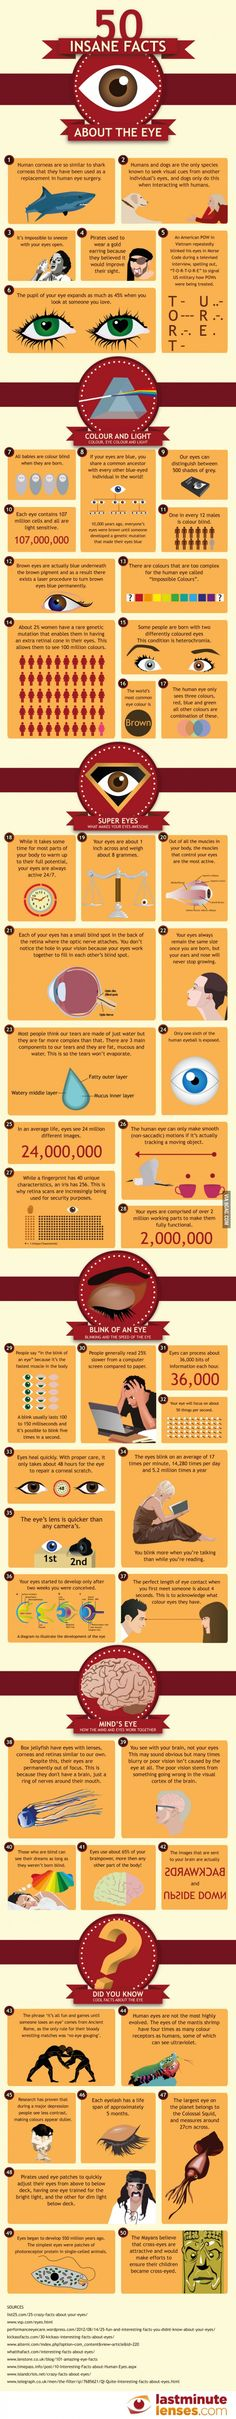 50 facts about the eye